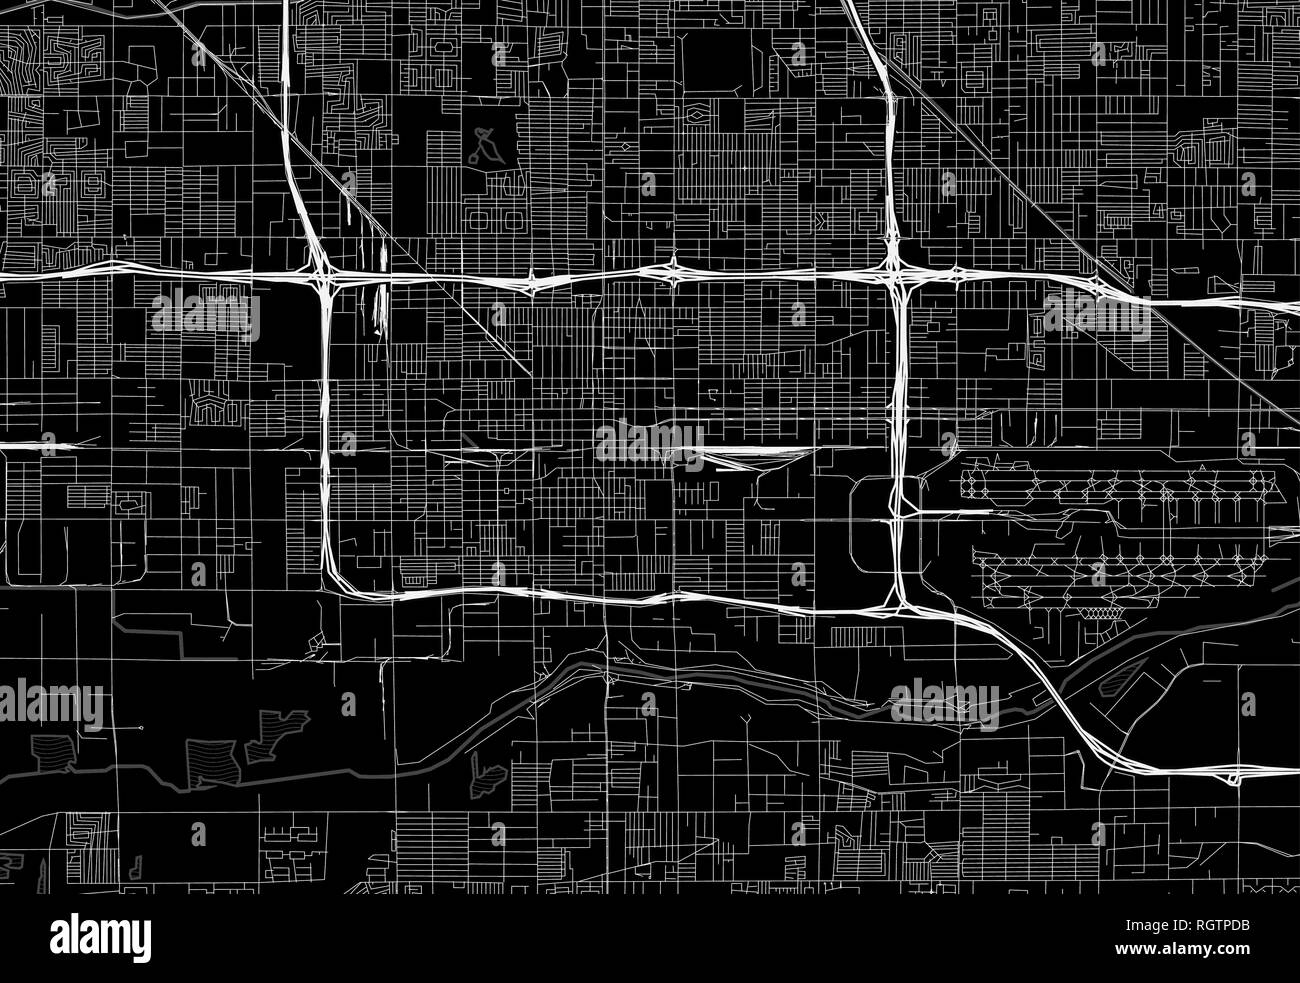 Black map of downtown Phoenix, U.S.A. This vector artmap is created as a decorative background or a unique travel sign. - Stock Vector